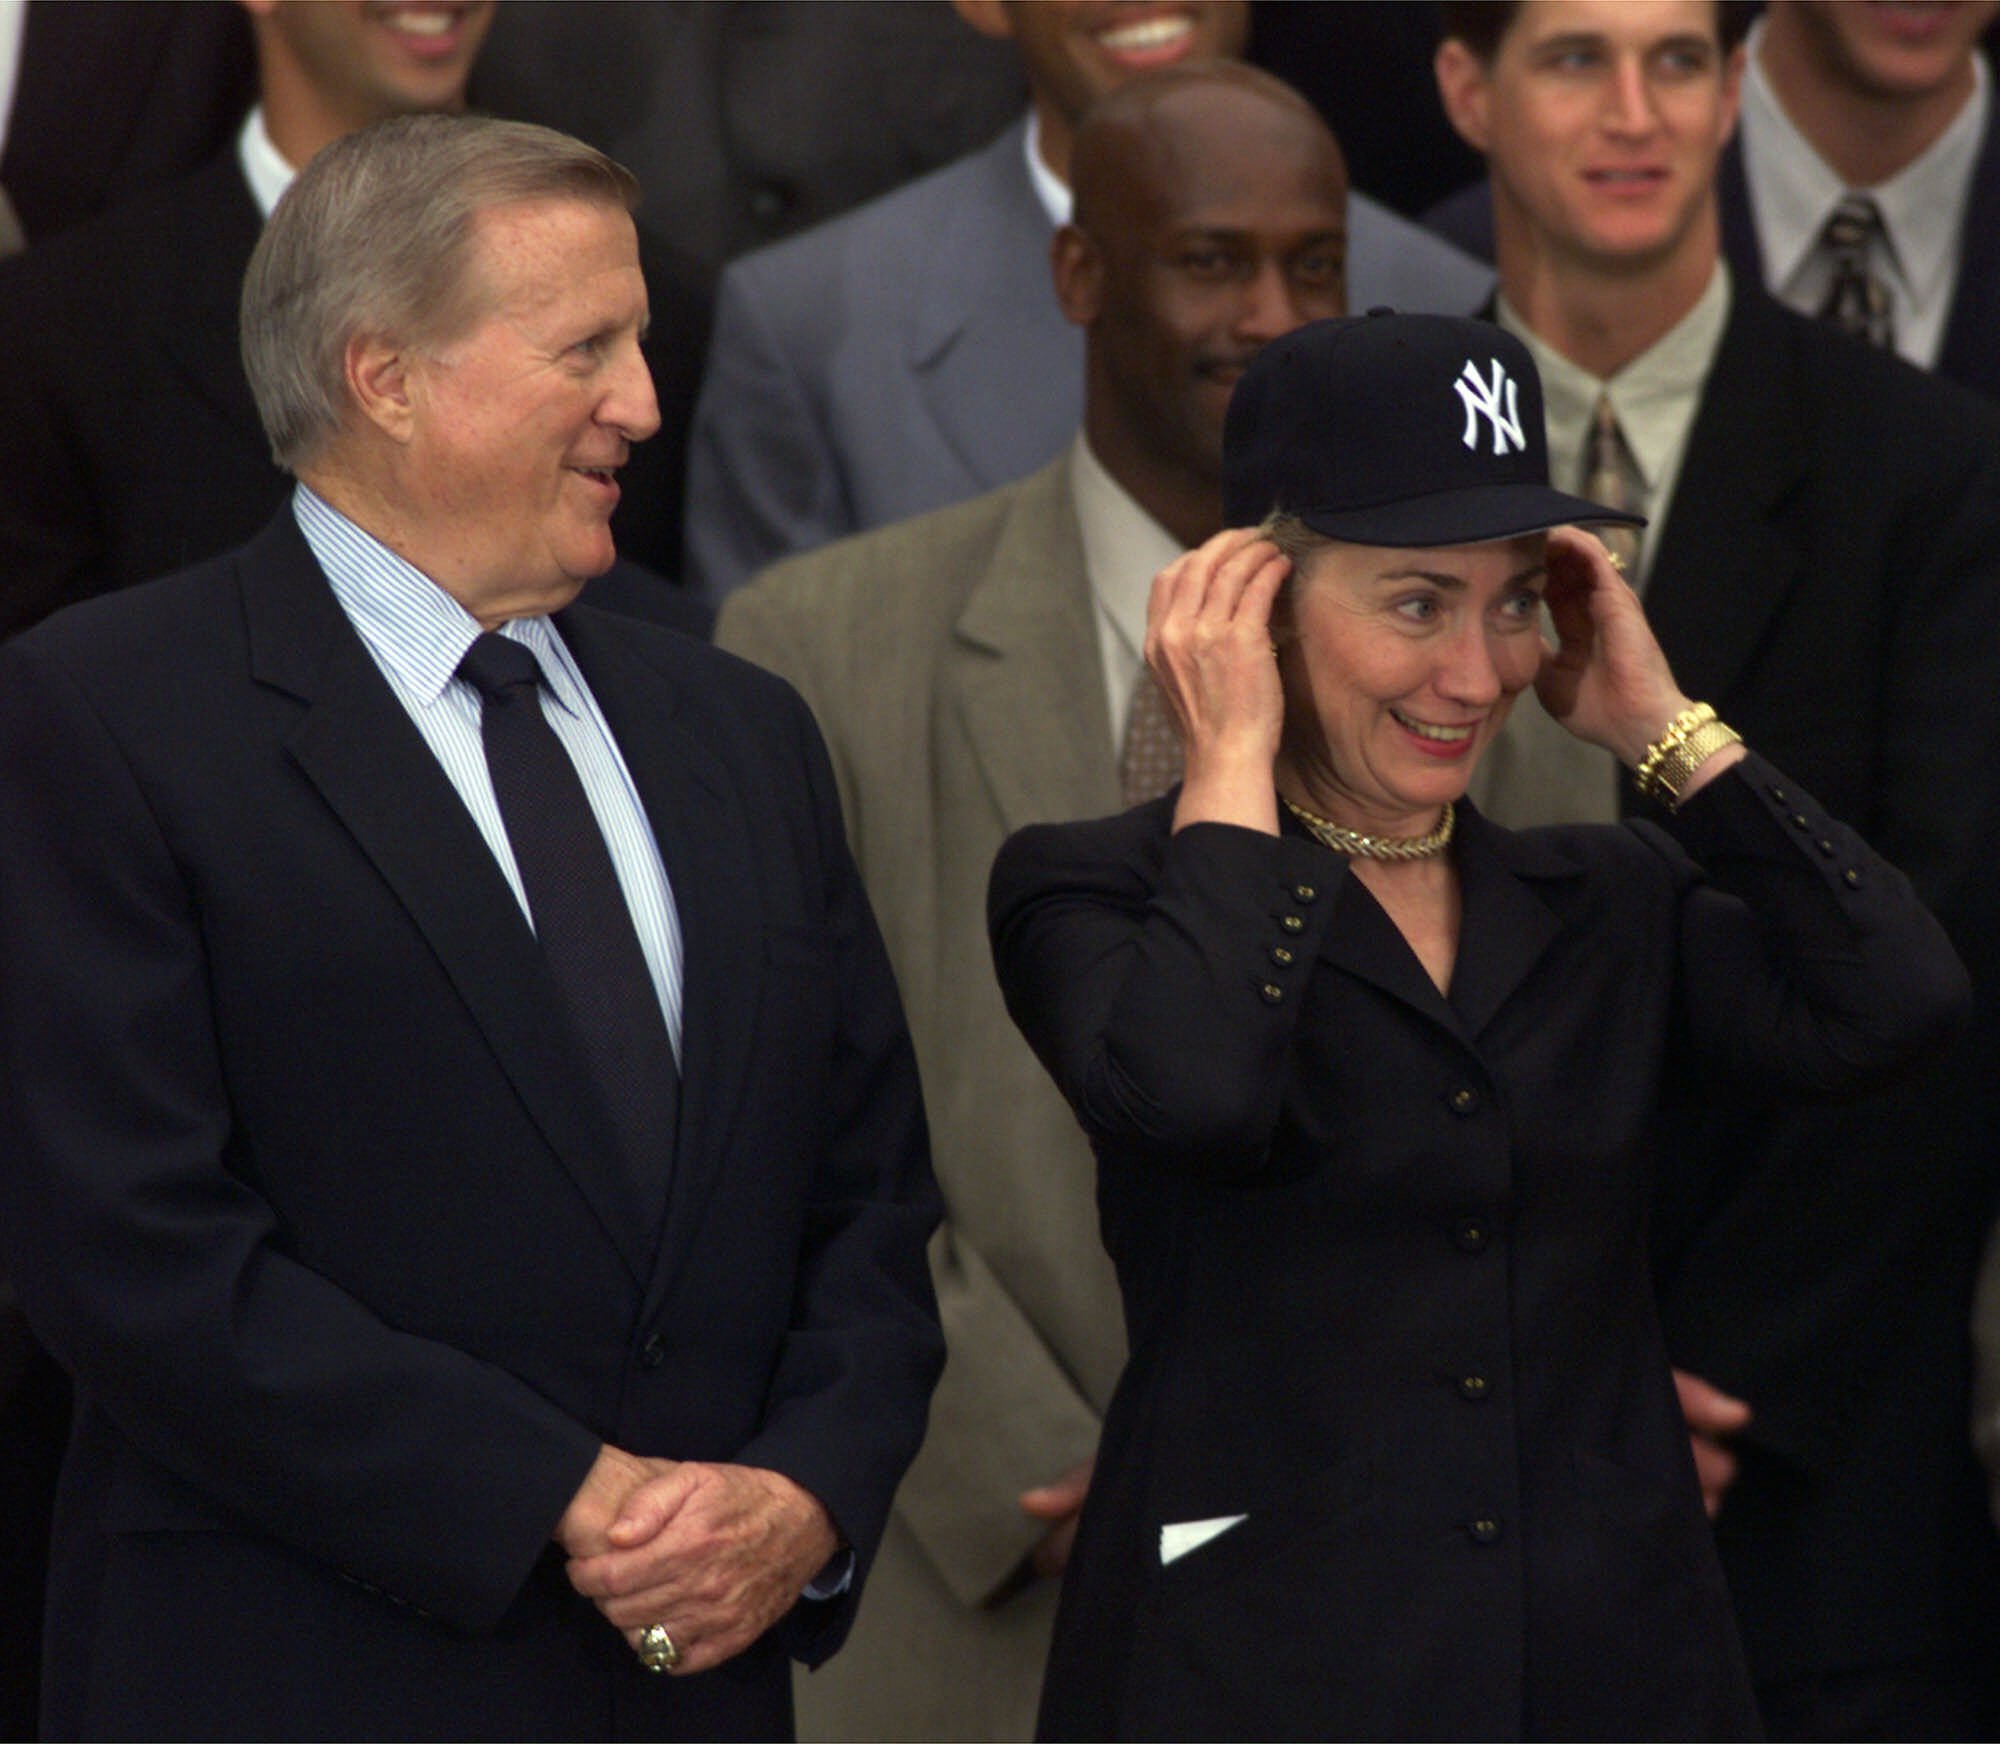 Hillary Clinton Back On Cubs Bandwagon After Years As Yankees Fan Washington Times